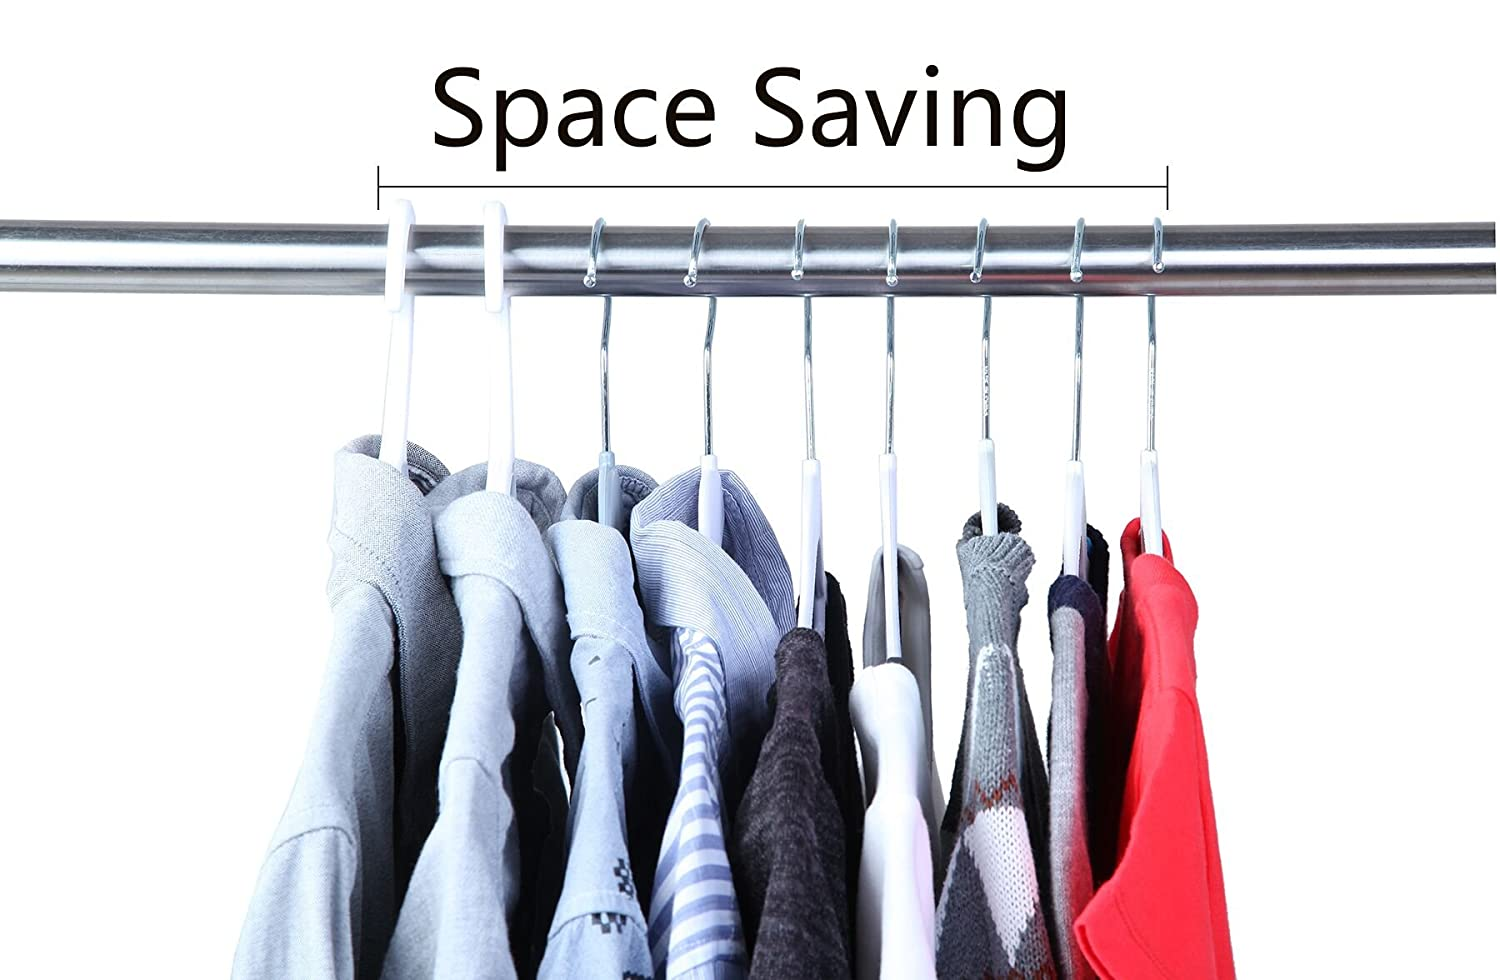 Durable Clothes Hangers with Non-Slip Pads Pants,White F20RP50MB9 Great for Shirts Space Saving Easy Slide Organizer for Bedroom Closet Finnhomy Heavy Duty 50 Pack Plastic Hangers